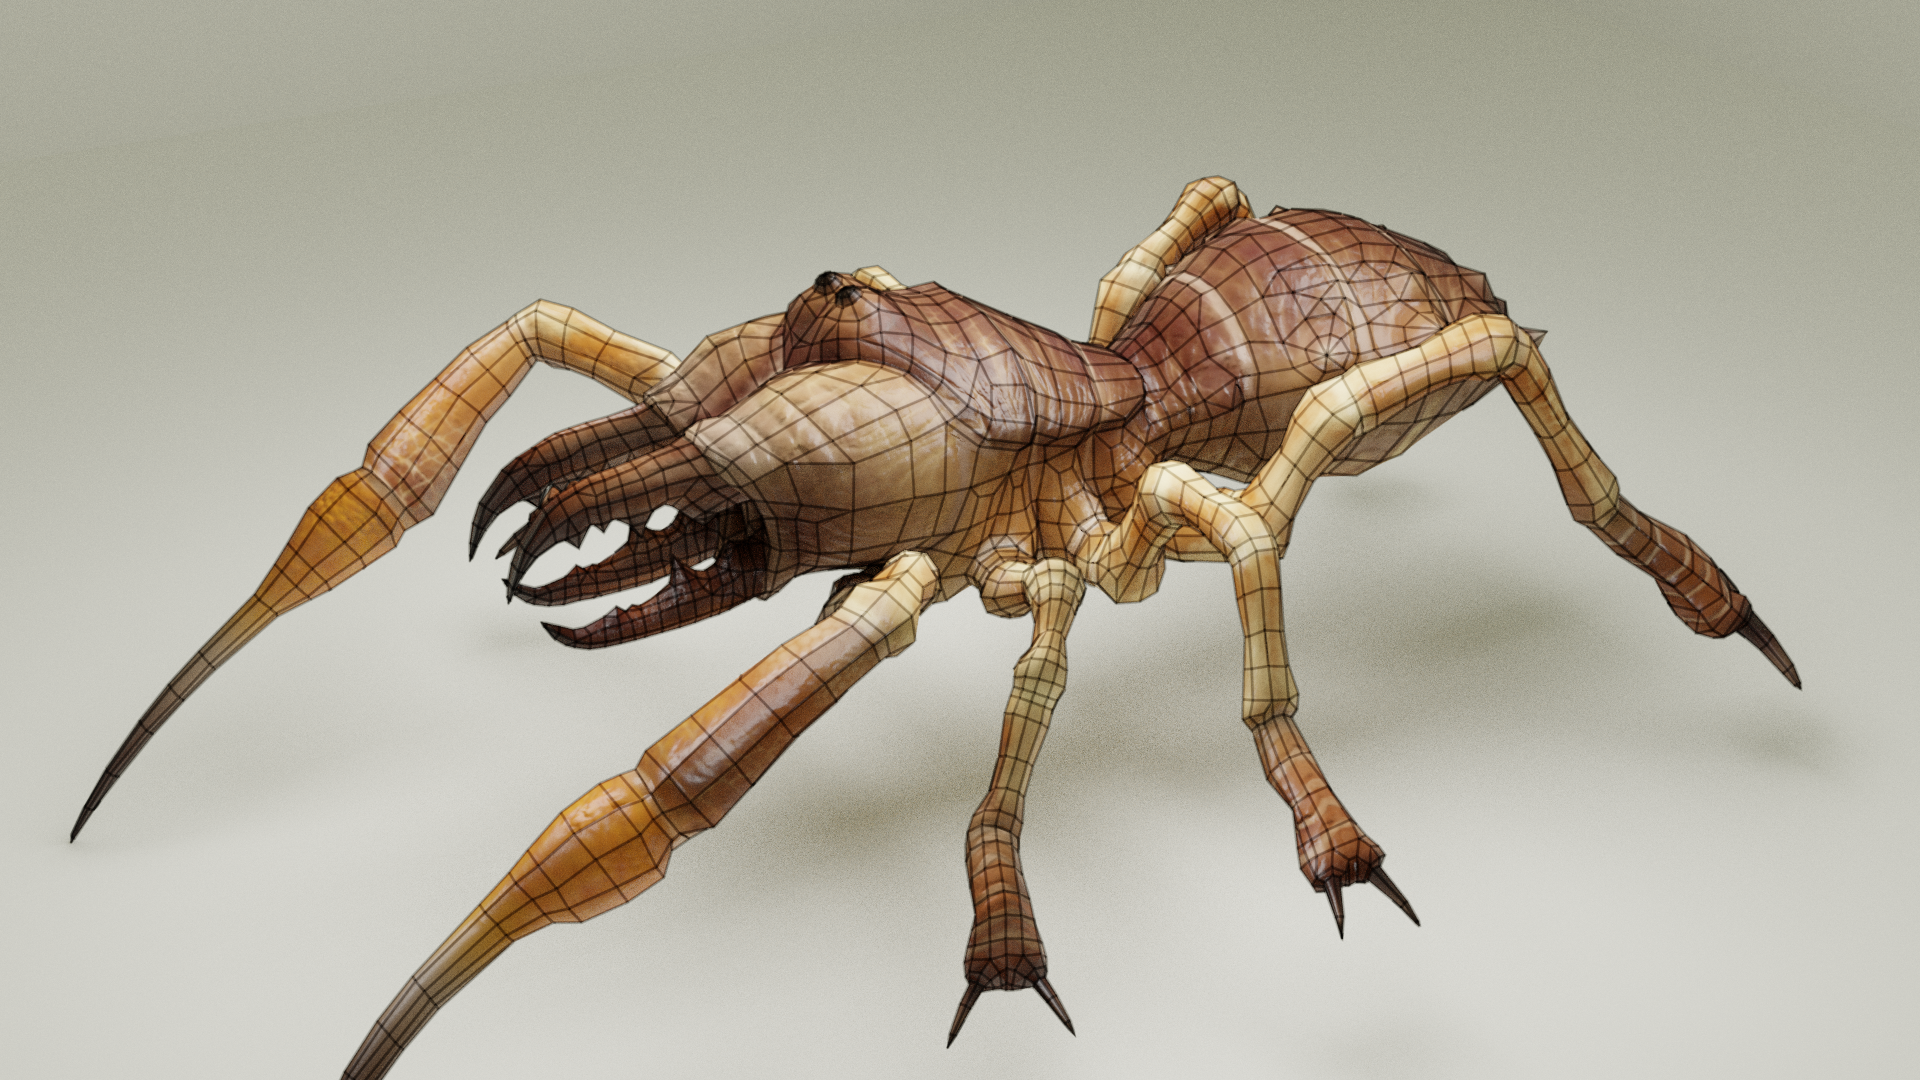 Wireframe Camel Spider Monster, Zbrush Created and Retopologized, Blender 3d Rendered